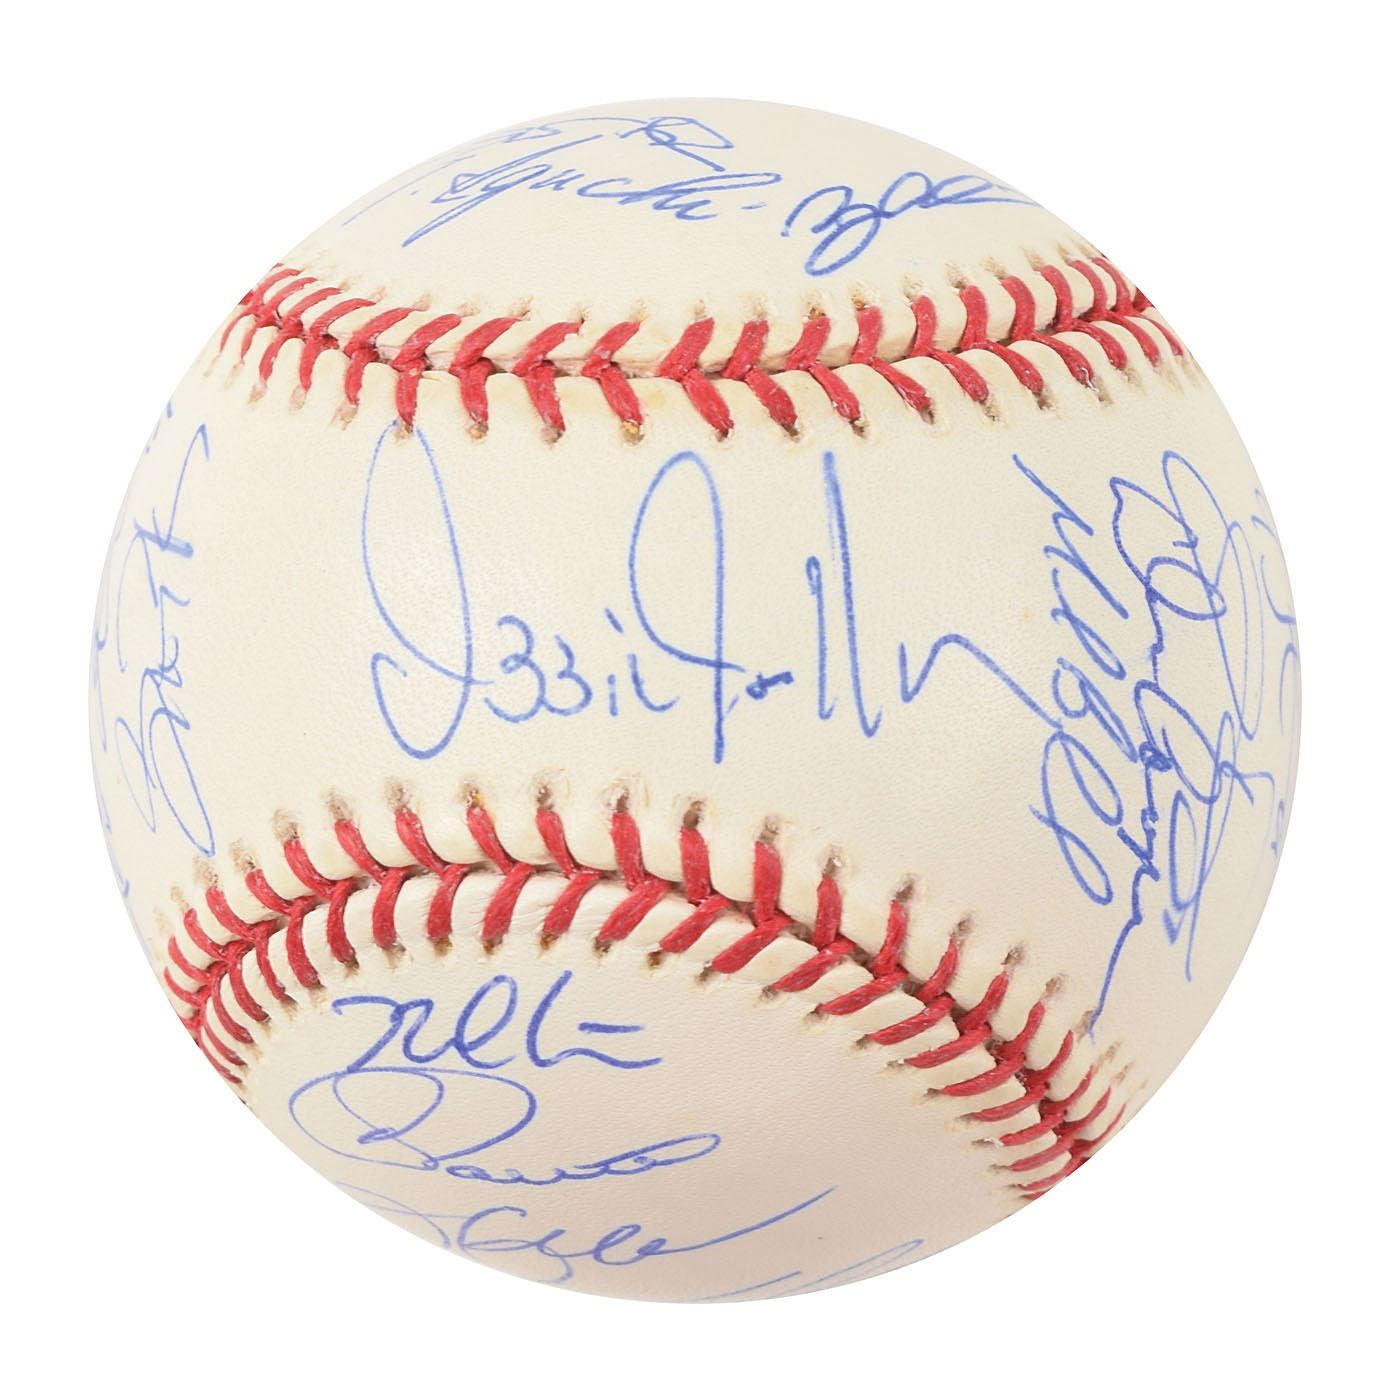 a448f6a72f8 ... Image 5   Chicago White Sox 2005 World Series Champions Team-Signed  Baseball with 26